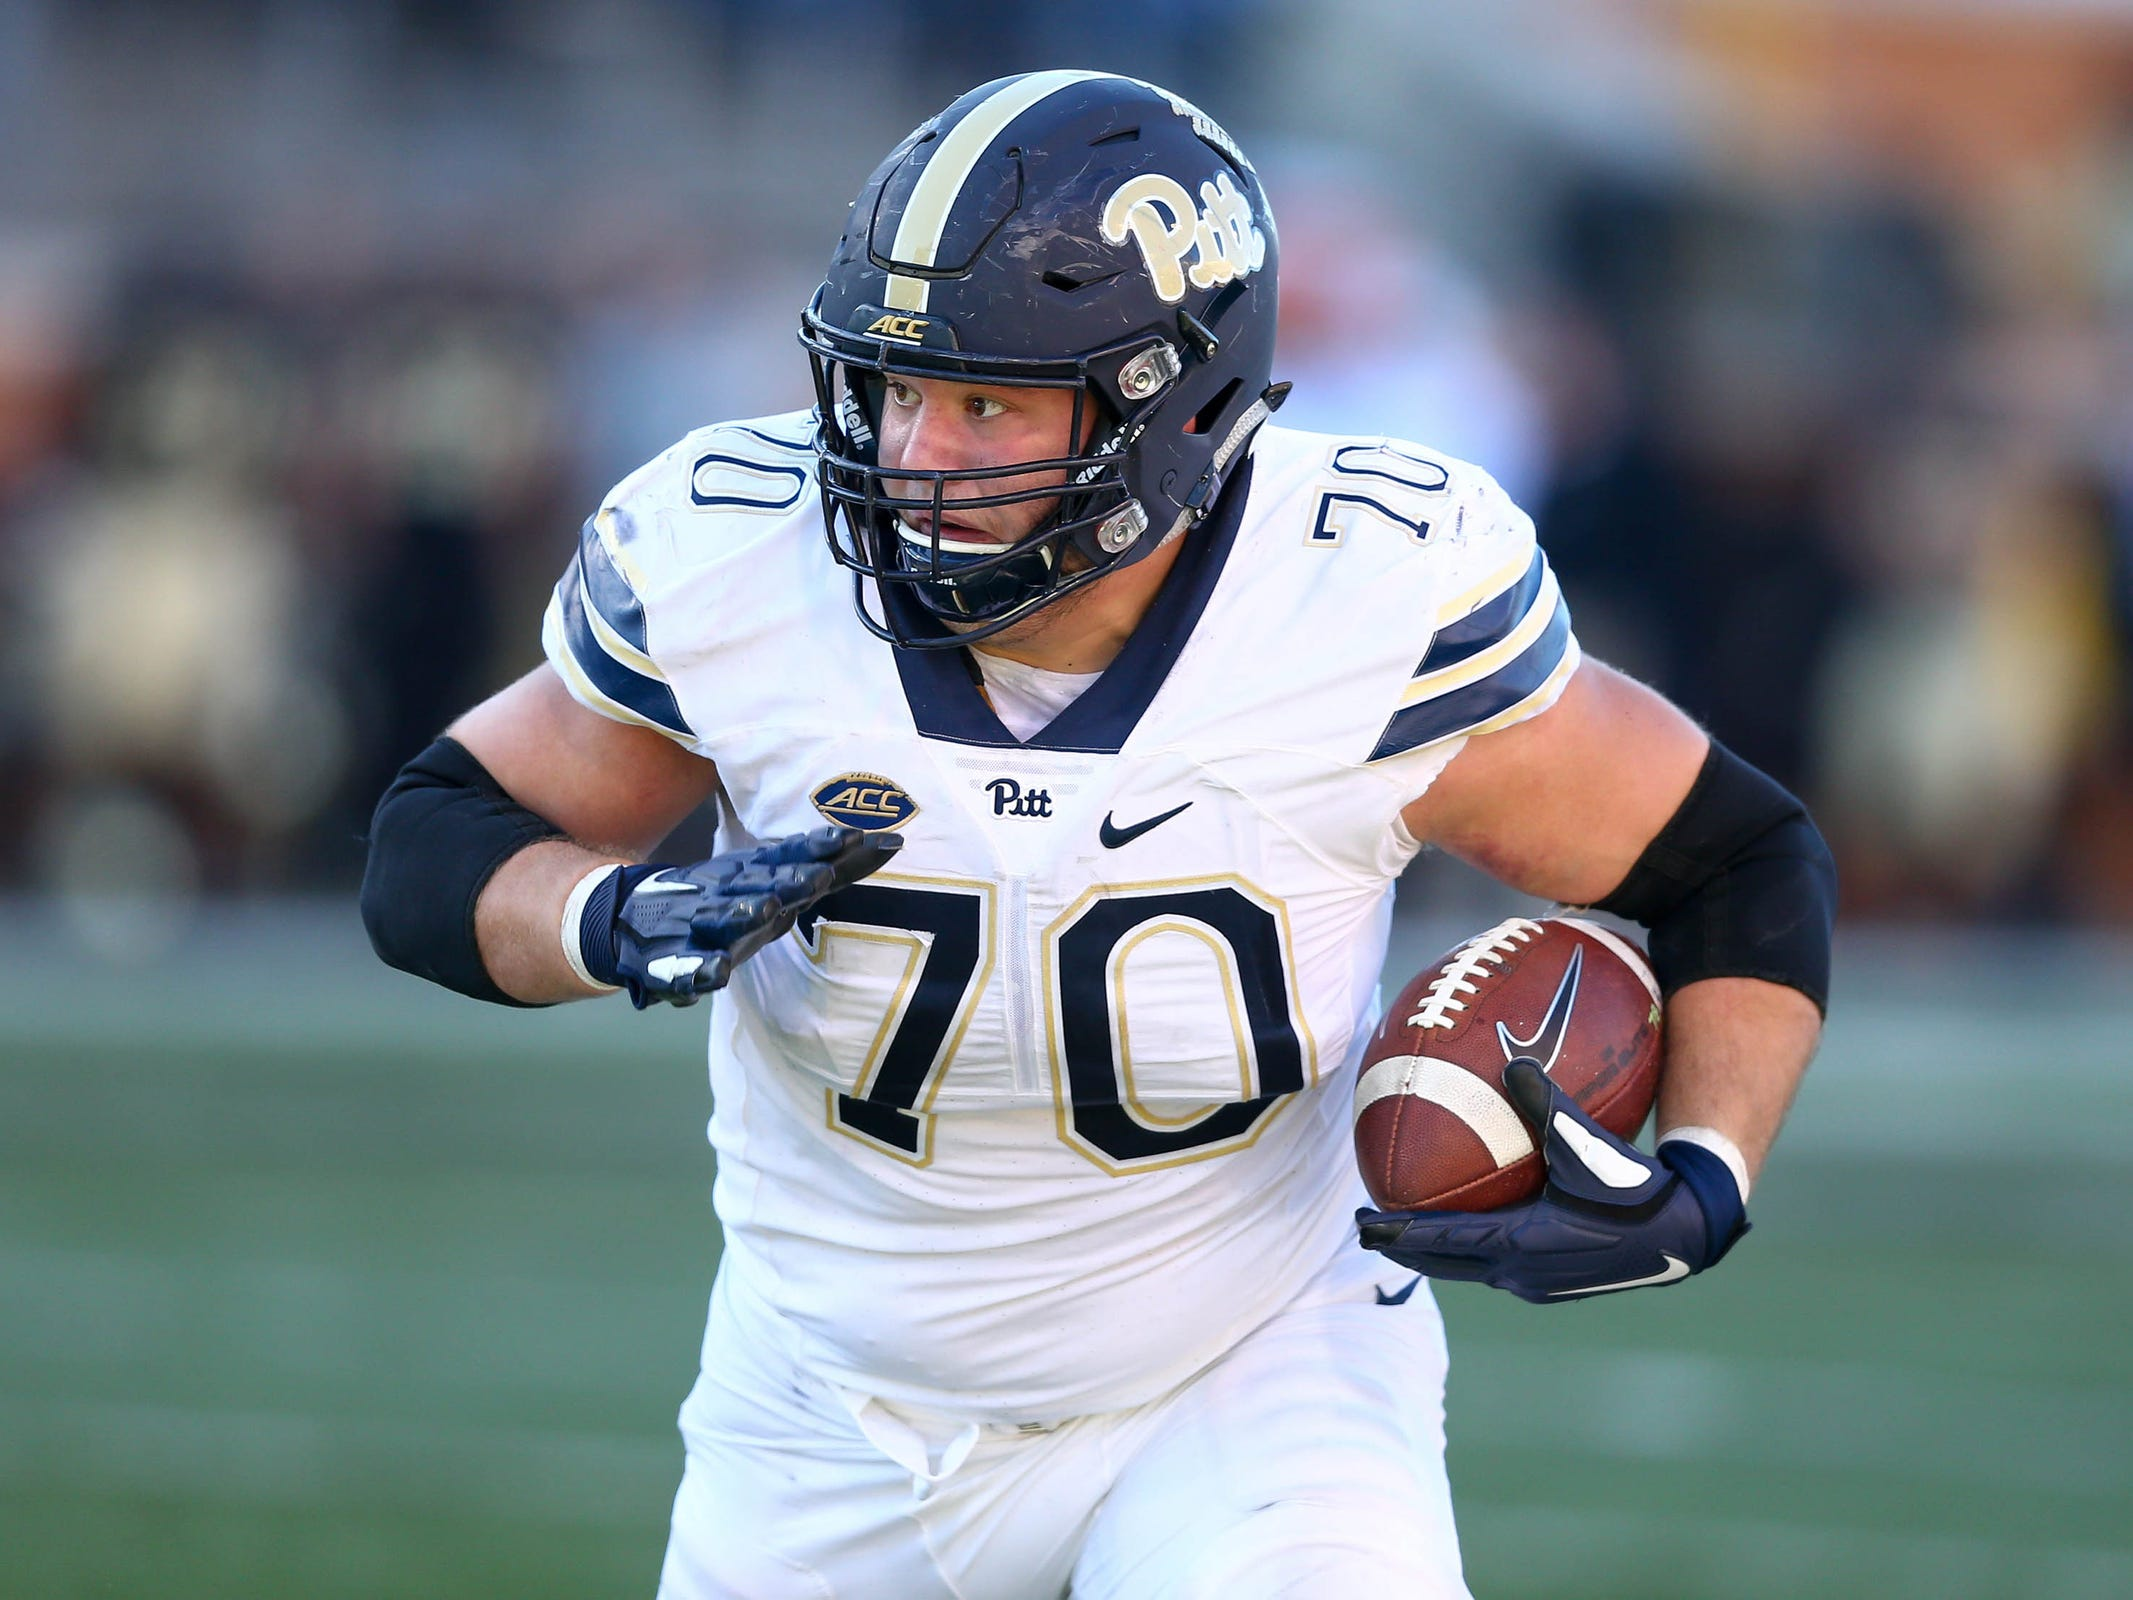 24. Pitt (7-4) | Last game: Defeated Wake Forest, 34-13 | Previous ranking: NR